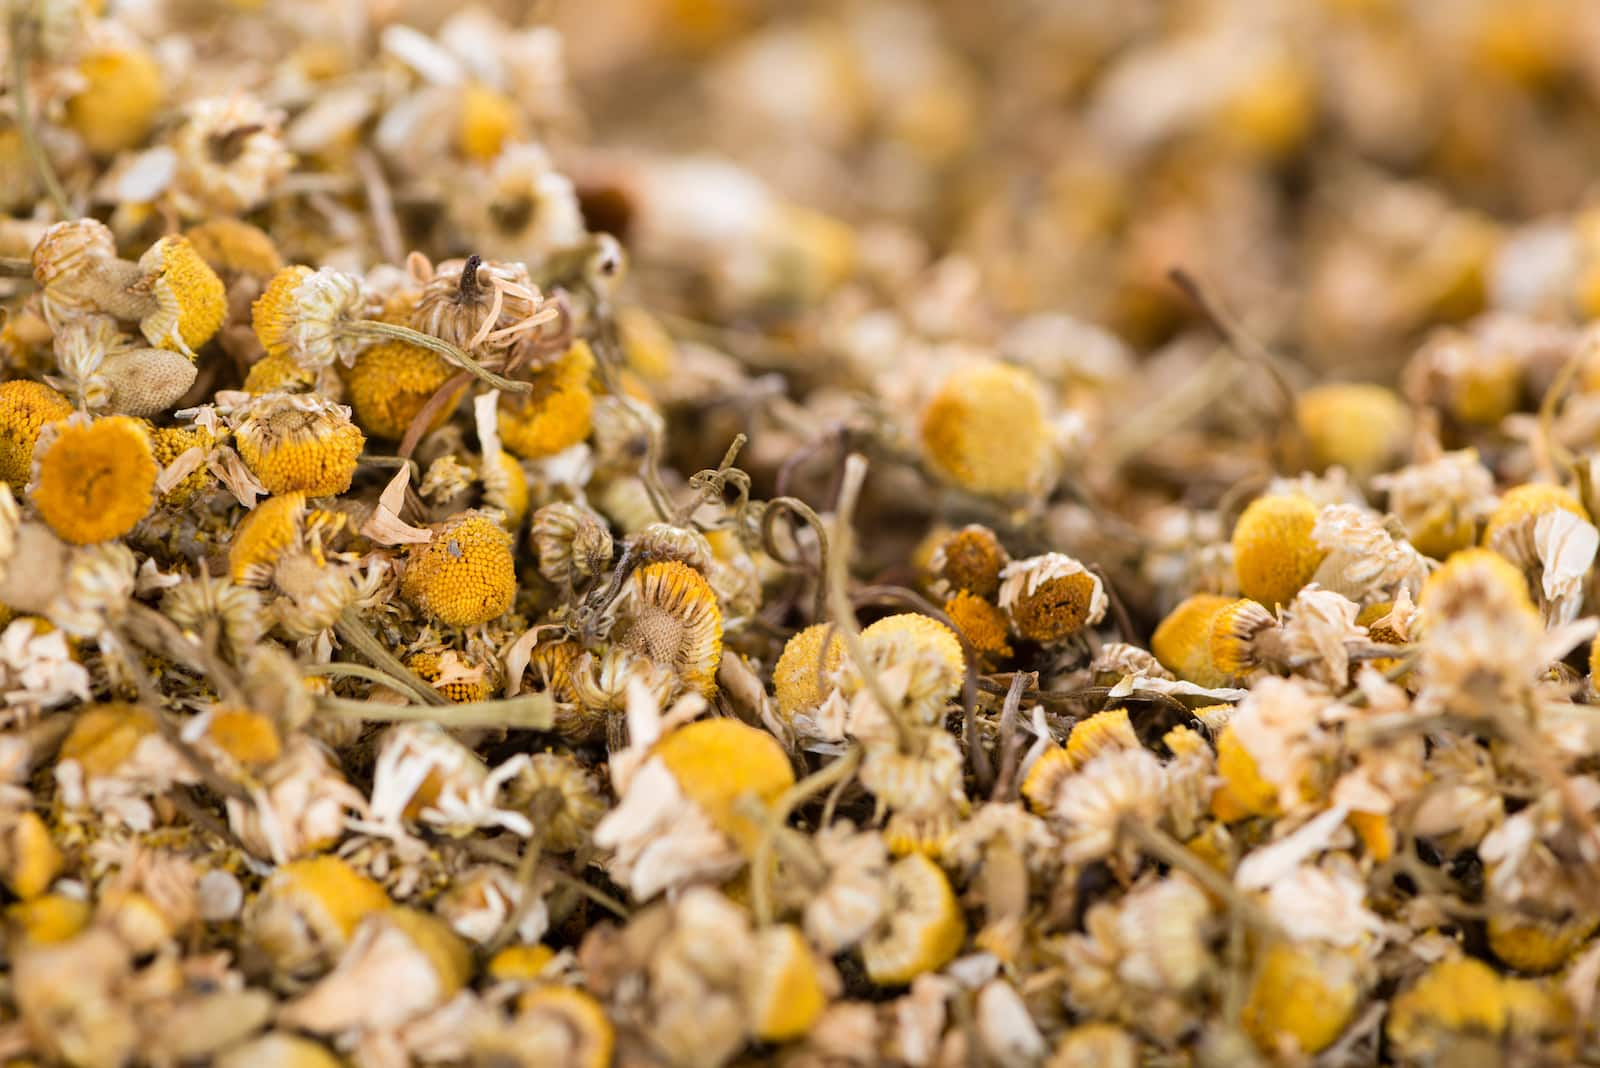 Chamomile Vs. Feverfew: SPICEography Showdown